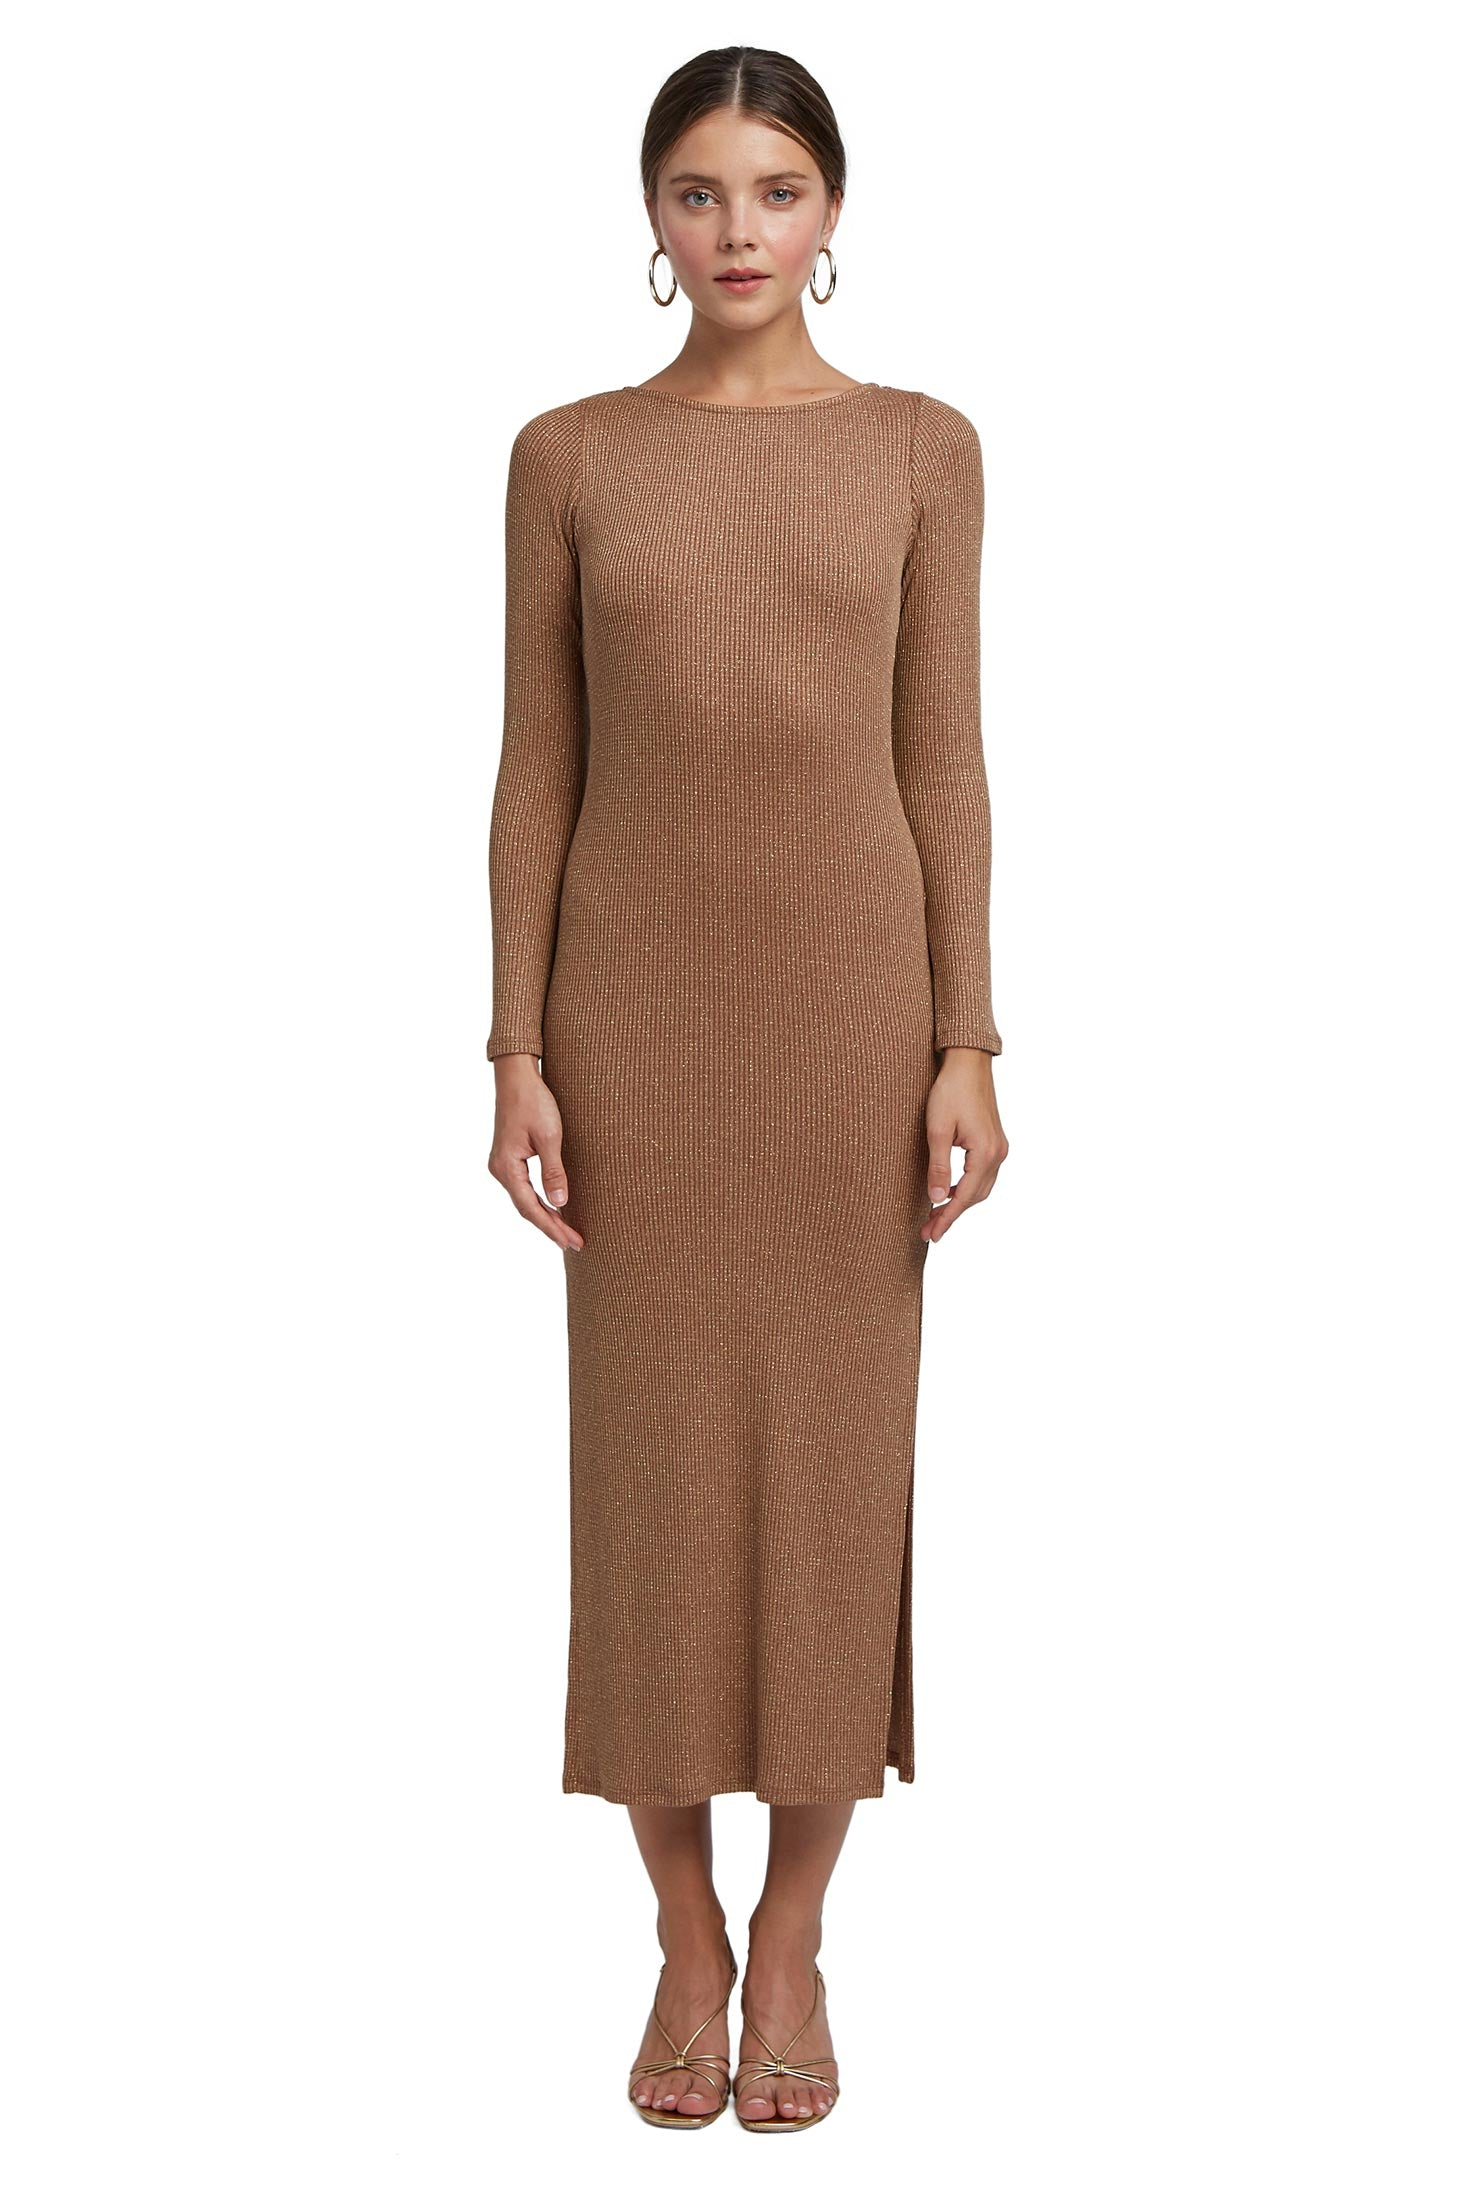 Metallic Rib Joan Sweater Dress - Caramel Gold